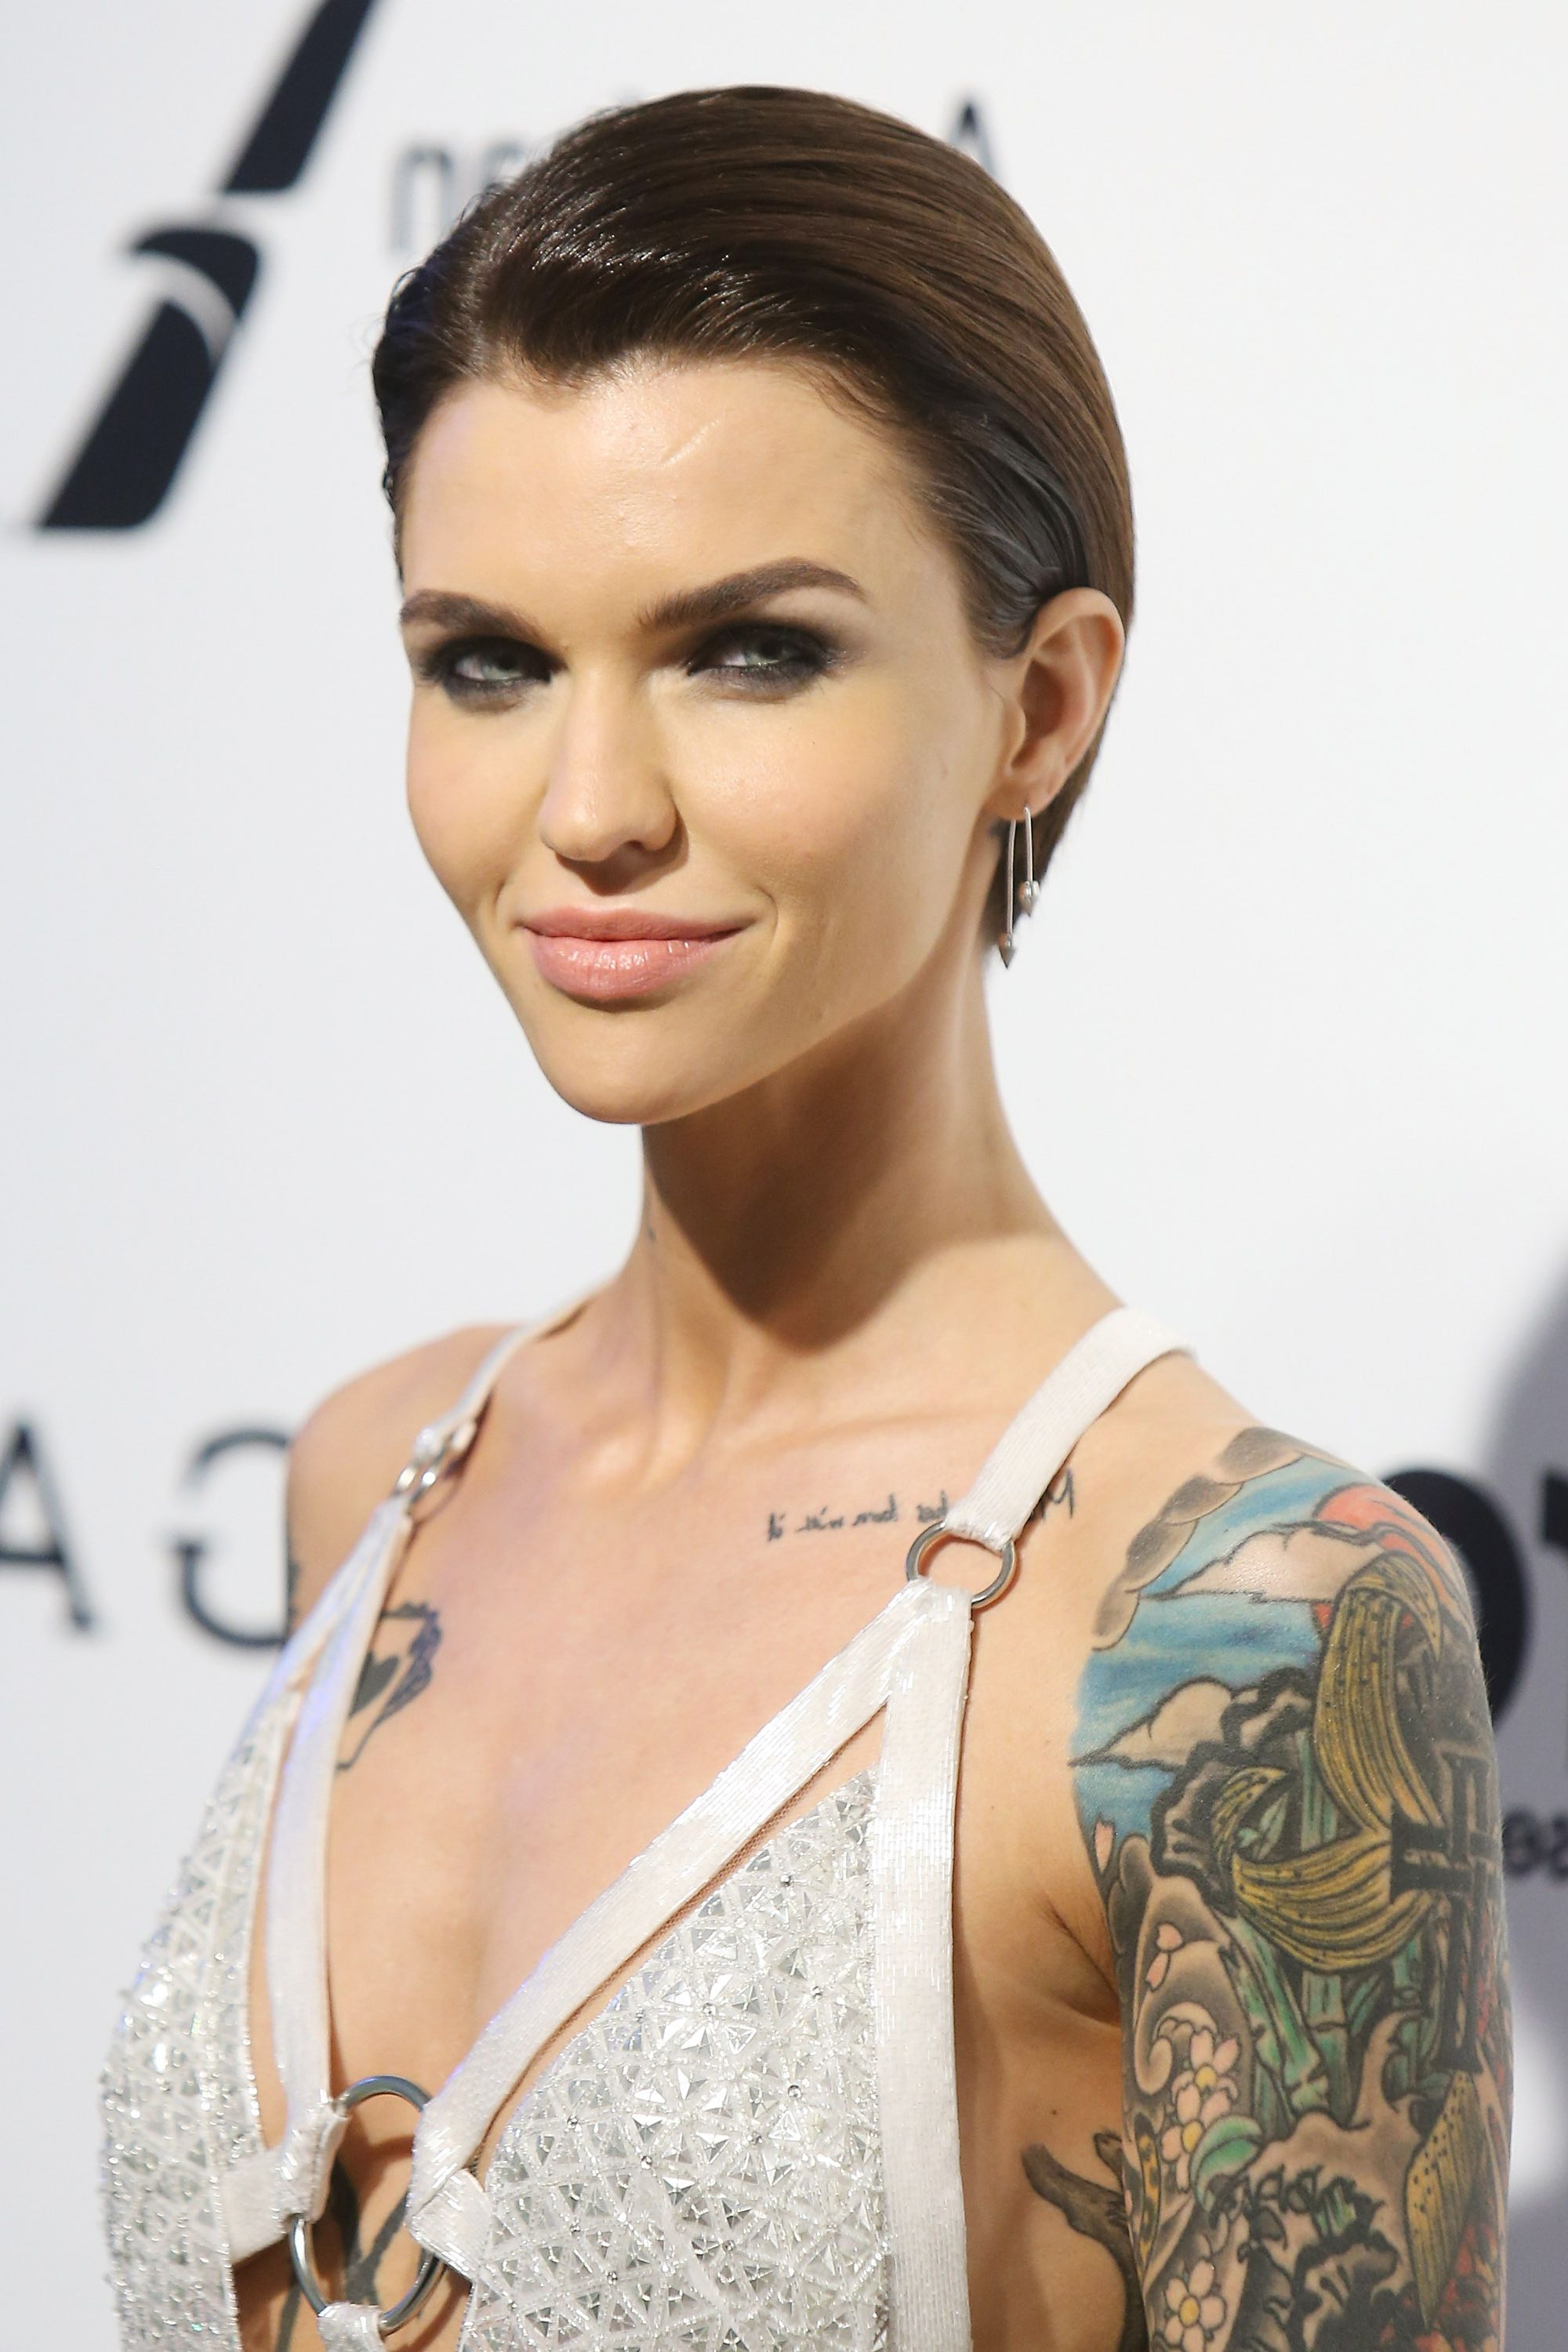 32 Best Hairstyles For Women 2018 – New Celebrity Haircut Trends Throughout Famous Ruby Rose Medium Hairstyles (View 10 of 20)